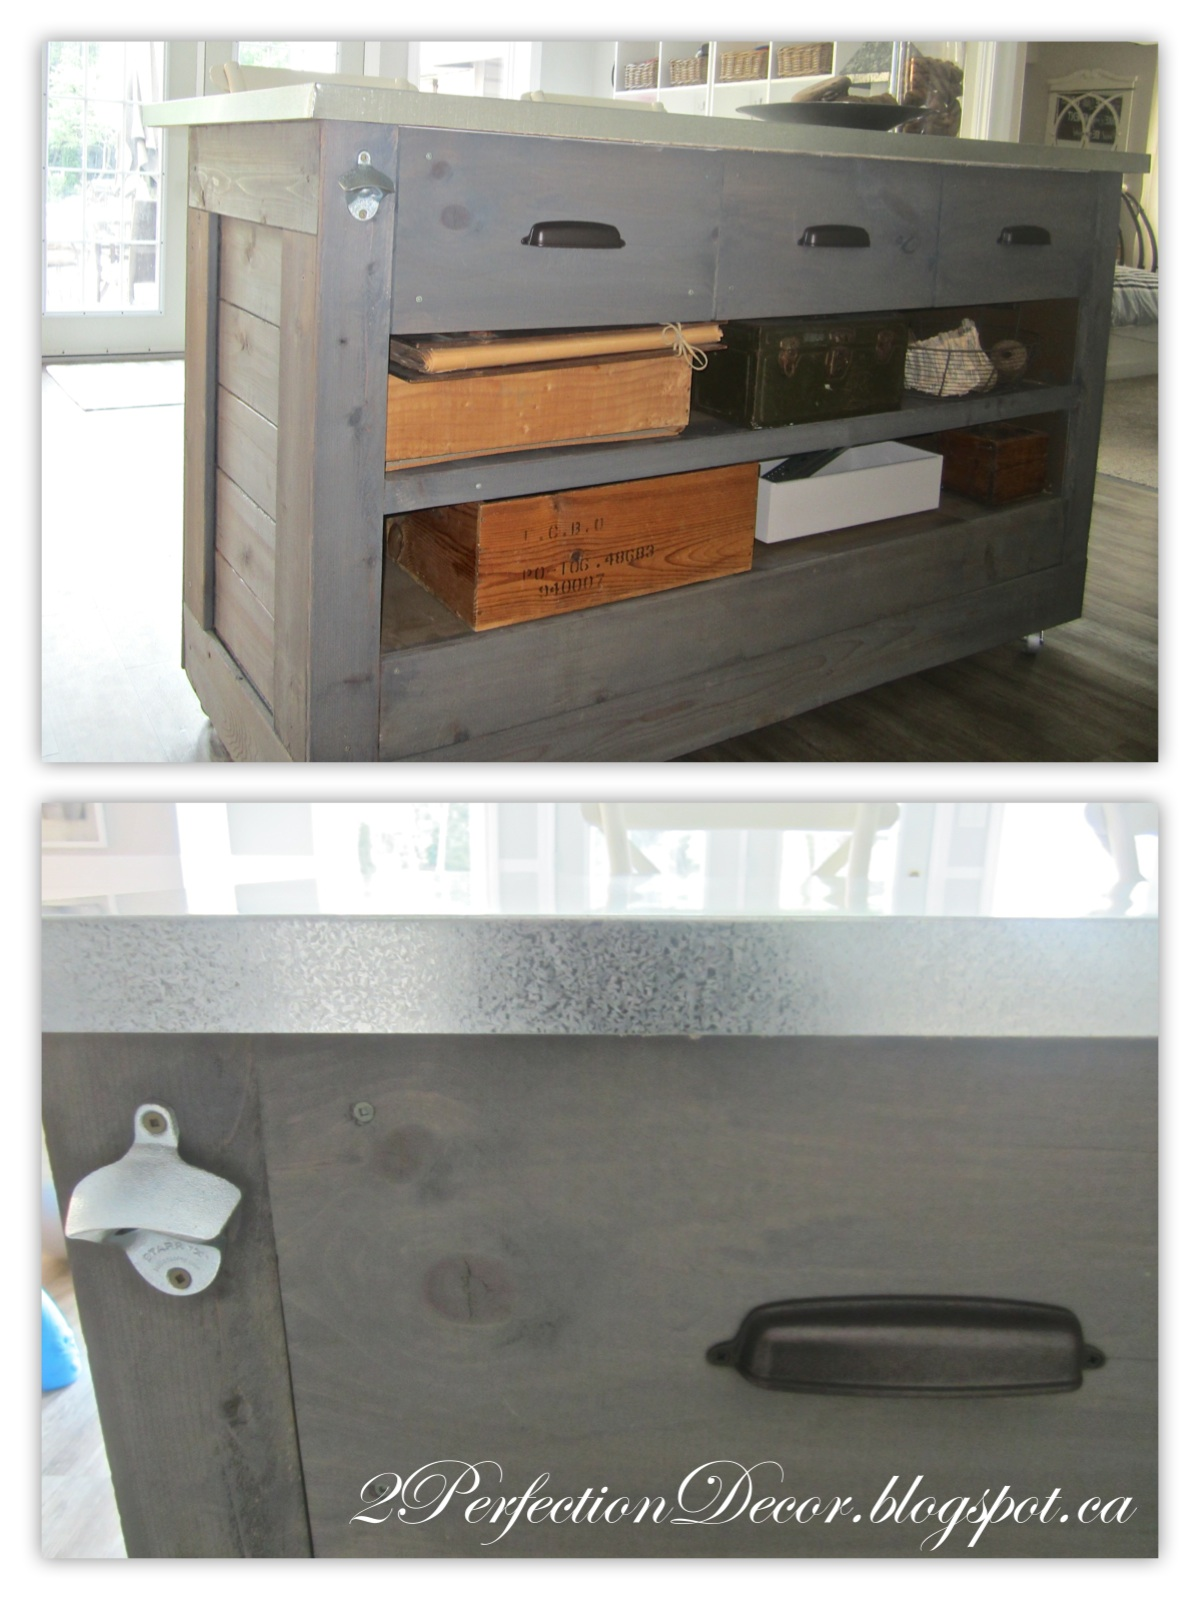 diy rustic bar. DIY Rustic Bar with Galvanized Counter by 2Perfection Decor Blog featured  on Remodelaholic IKEA Hack Metal Top